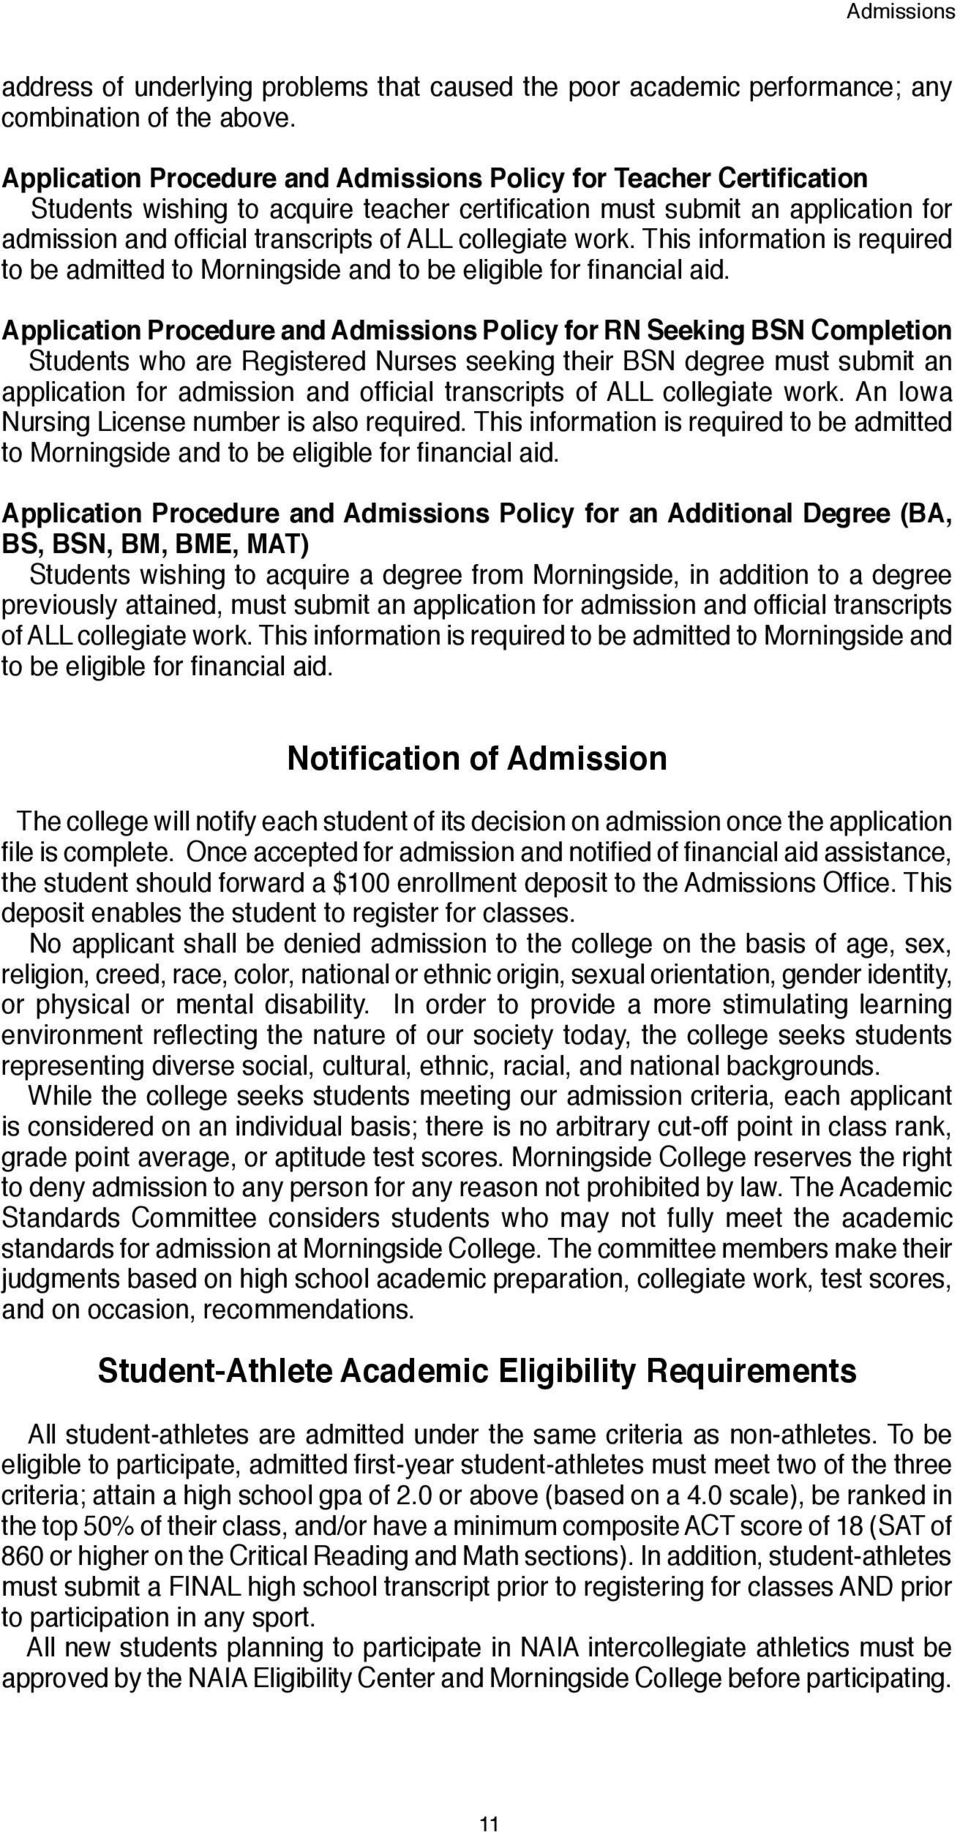 collegiate work. This information is required to be admitted to Morningside and to be eligible for financial aid.